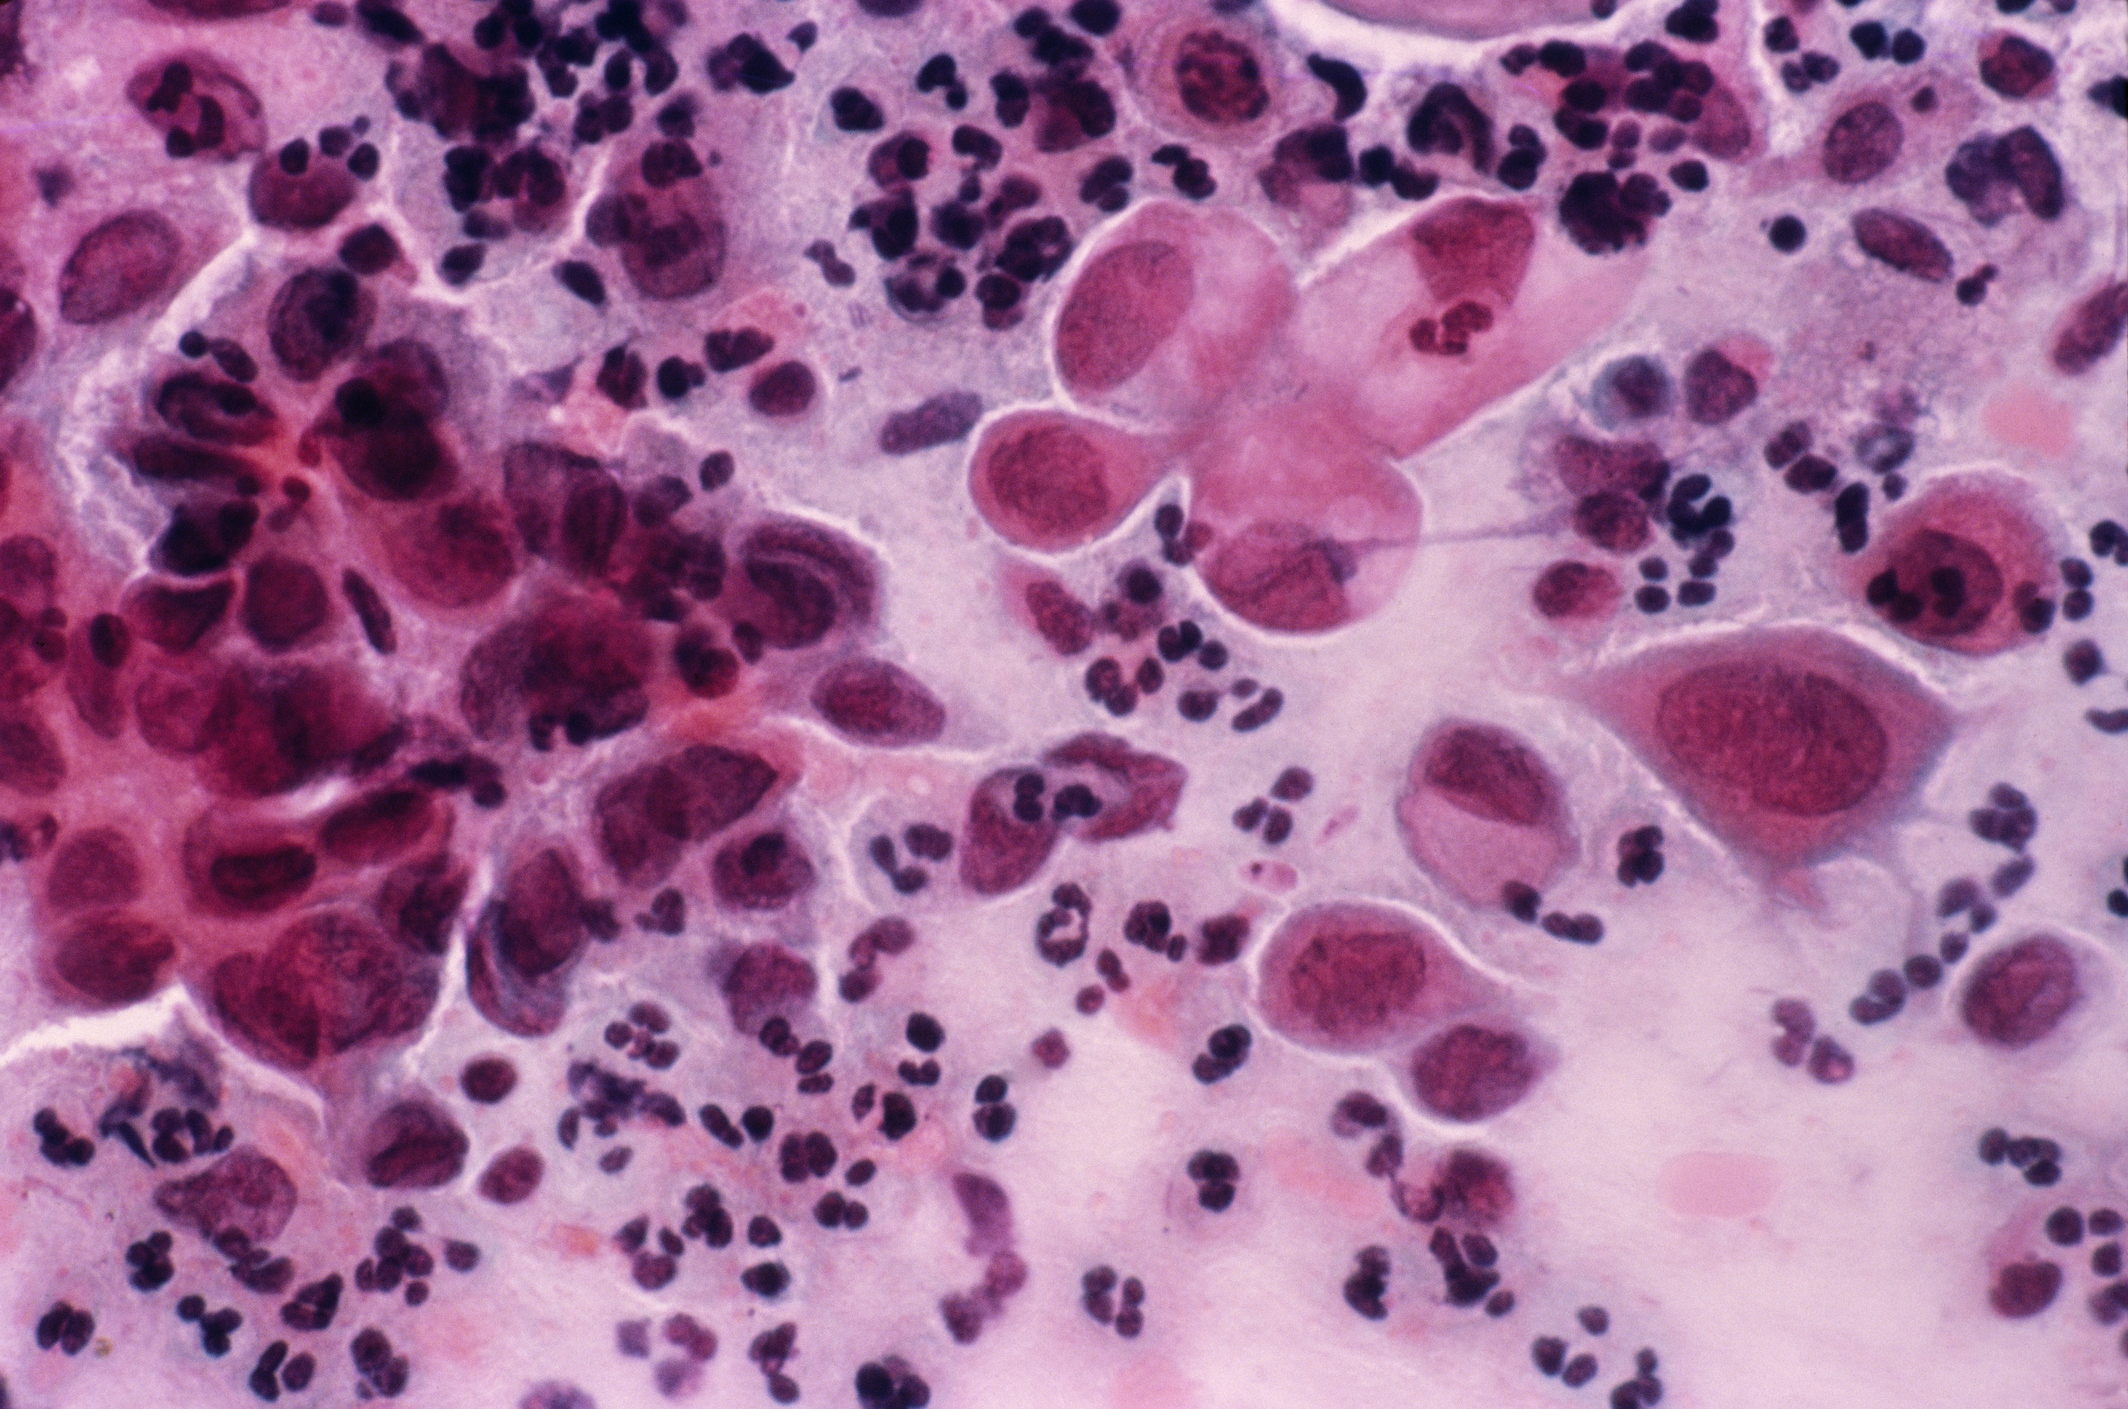 Light micrograph of a vaginal smear showing cancer cells (large pink cells with purple nuclei).